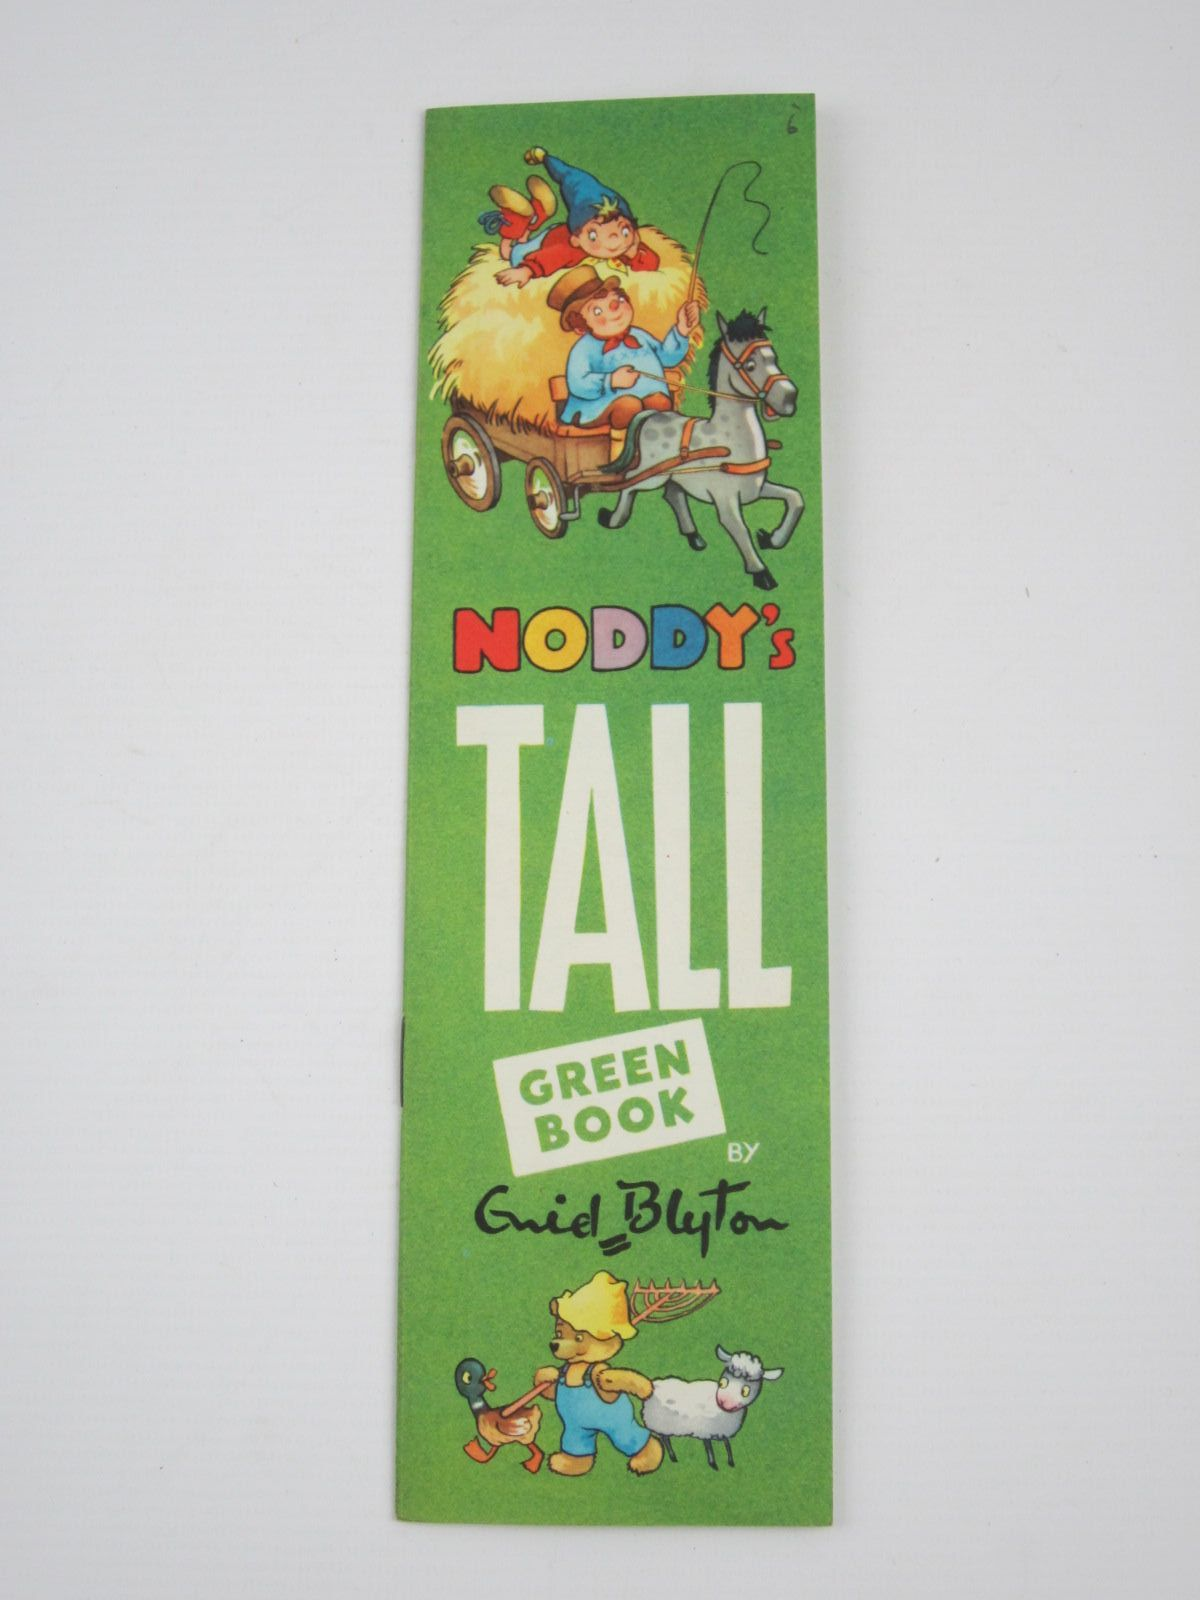 Cover of NODDY'S TALL GREEN BOOK by Enid Blyton